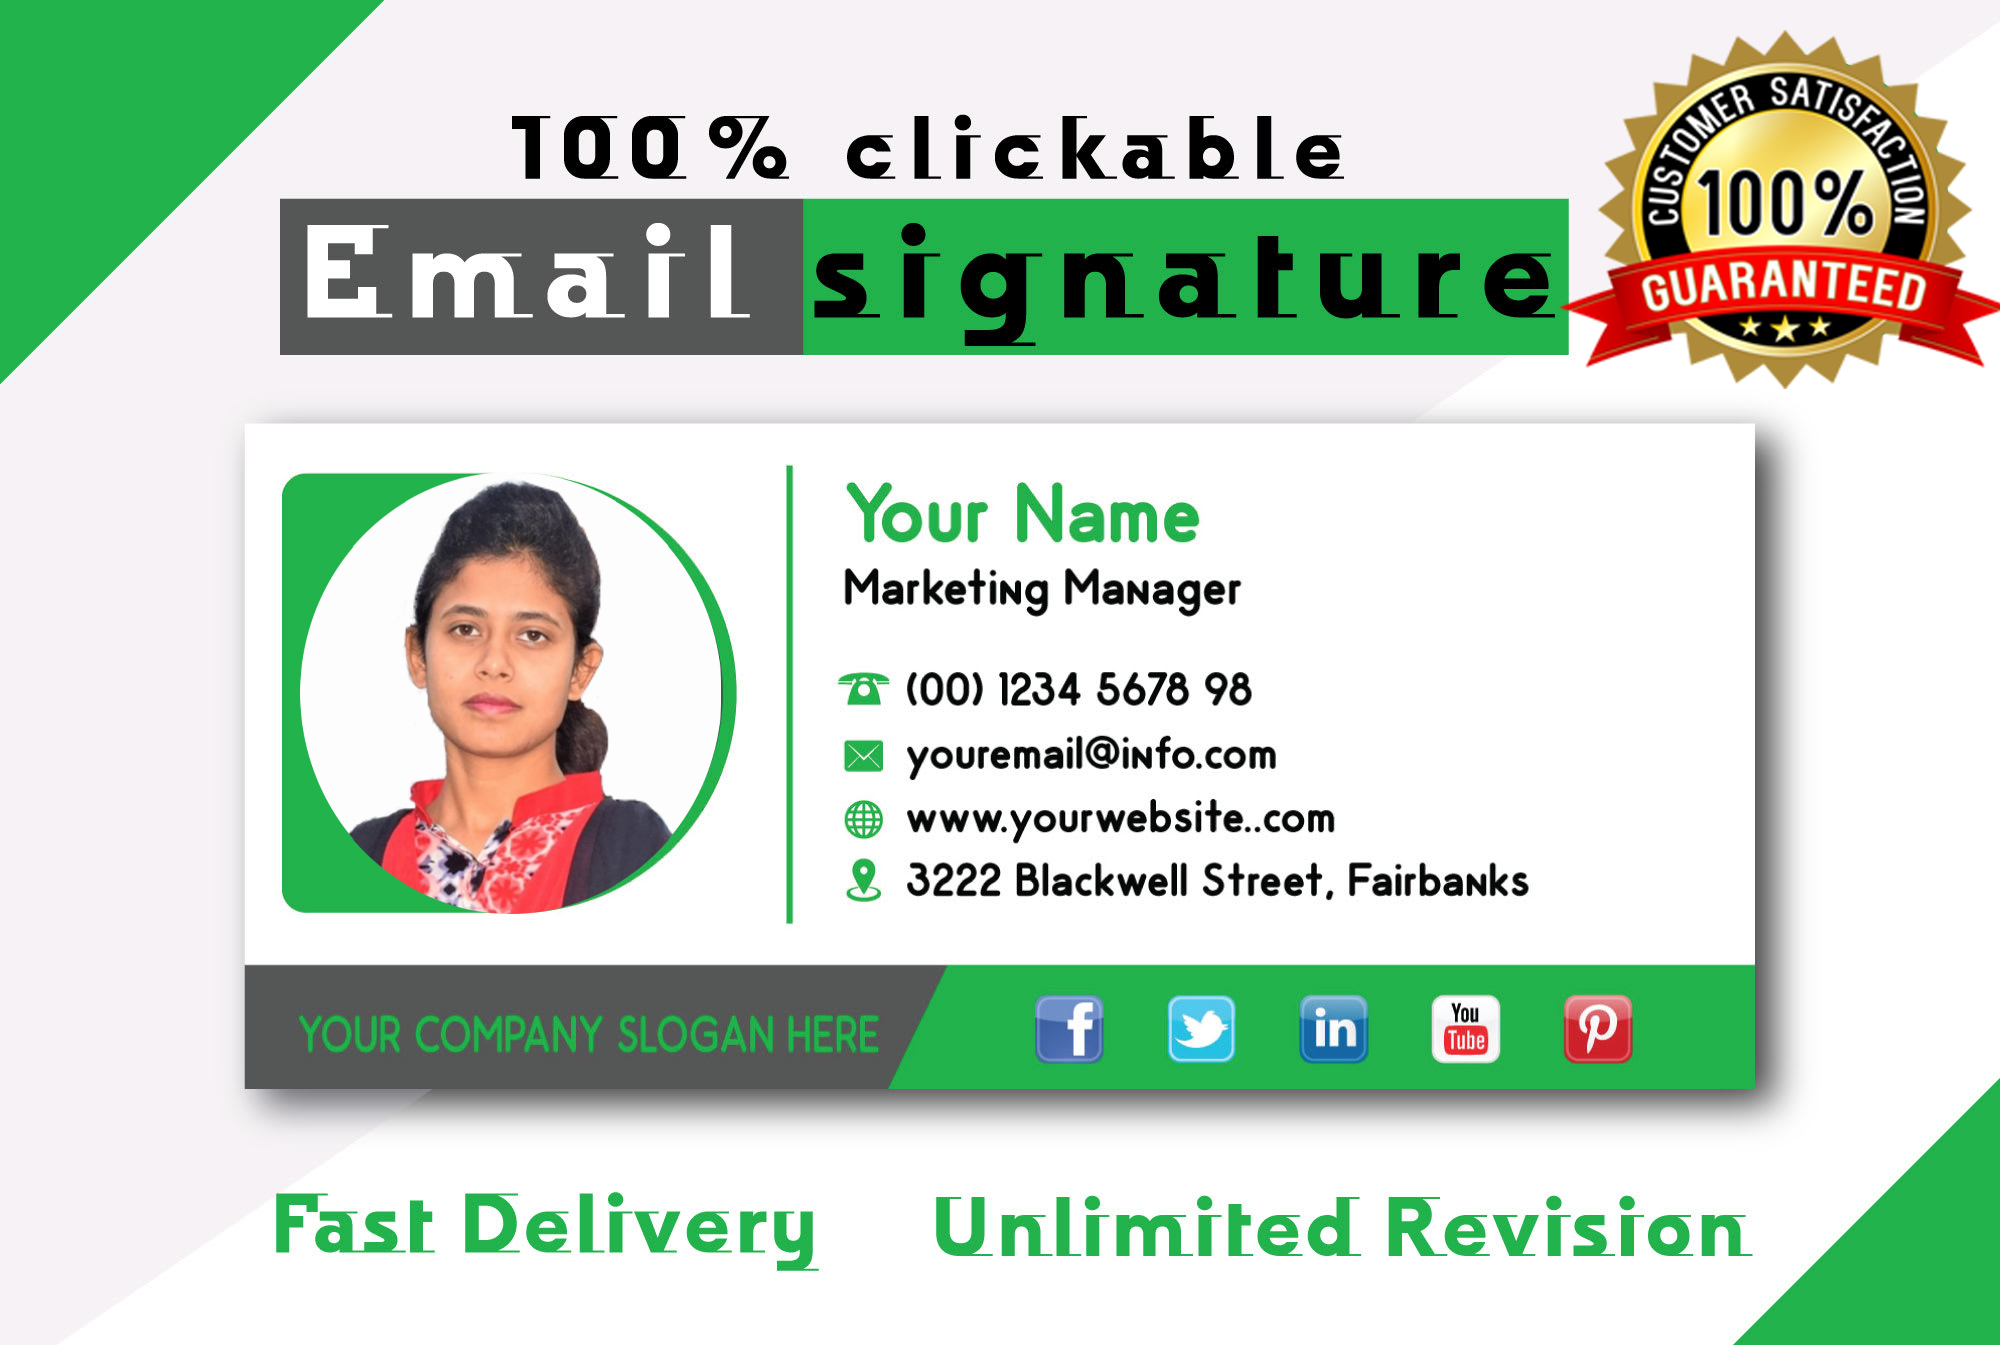 I will make a clickable email signature for outlook, gmail etc